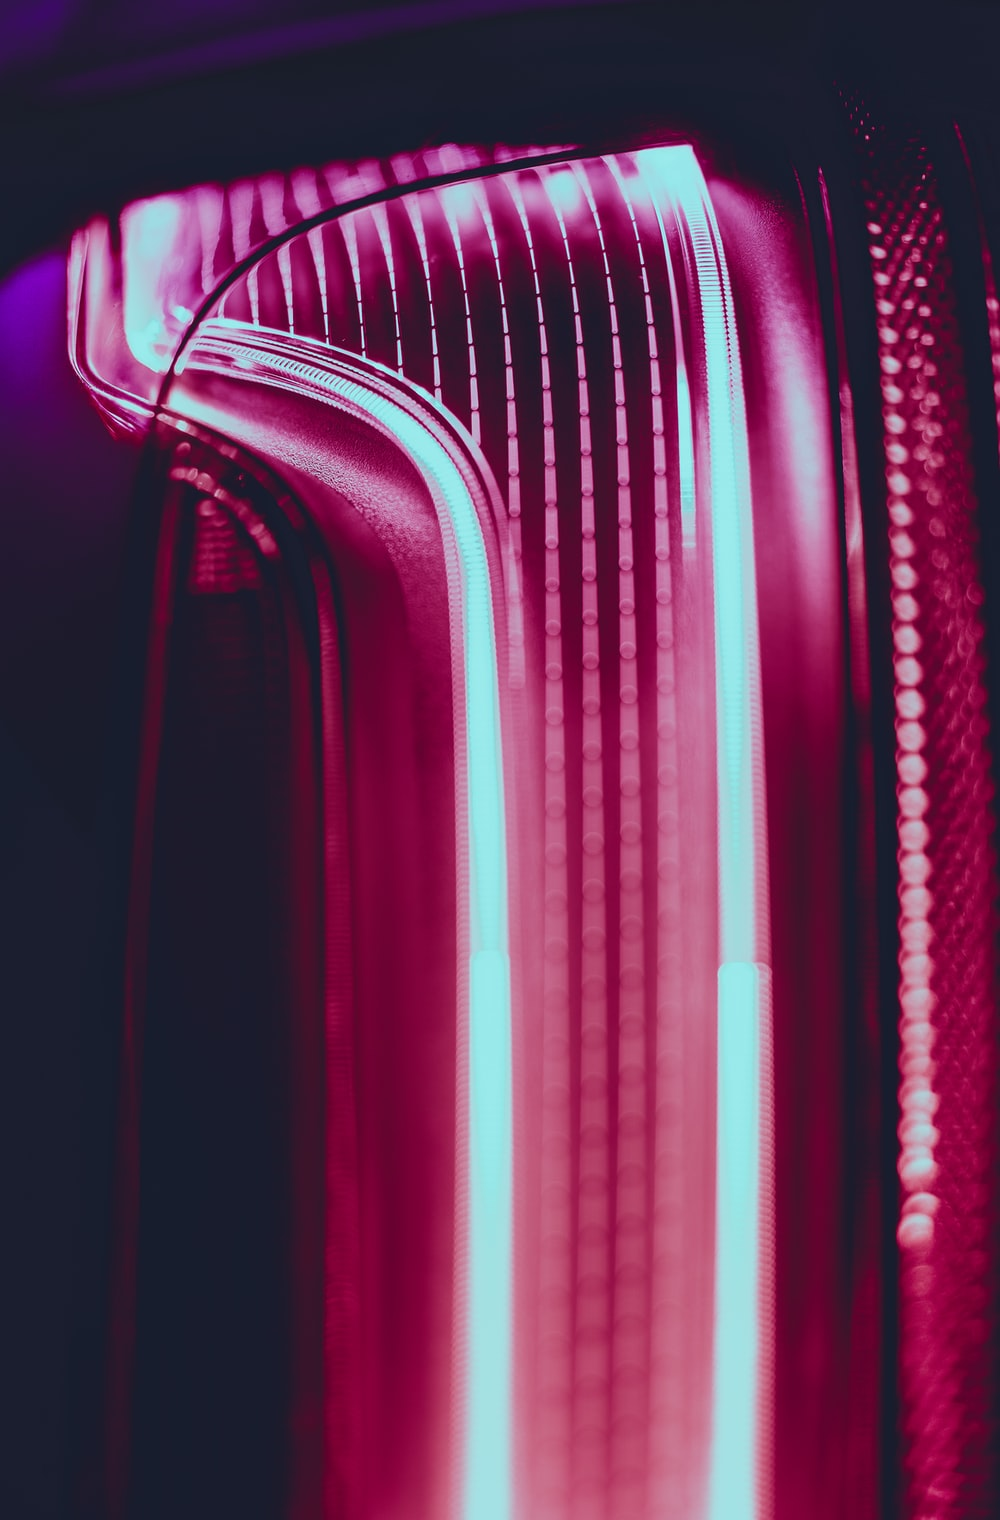 Close-up of glowing lines in a pink neon